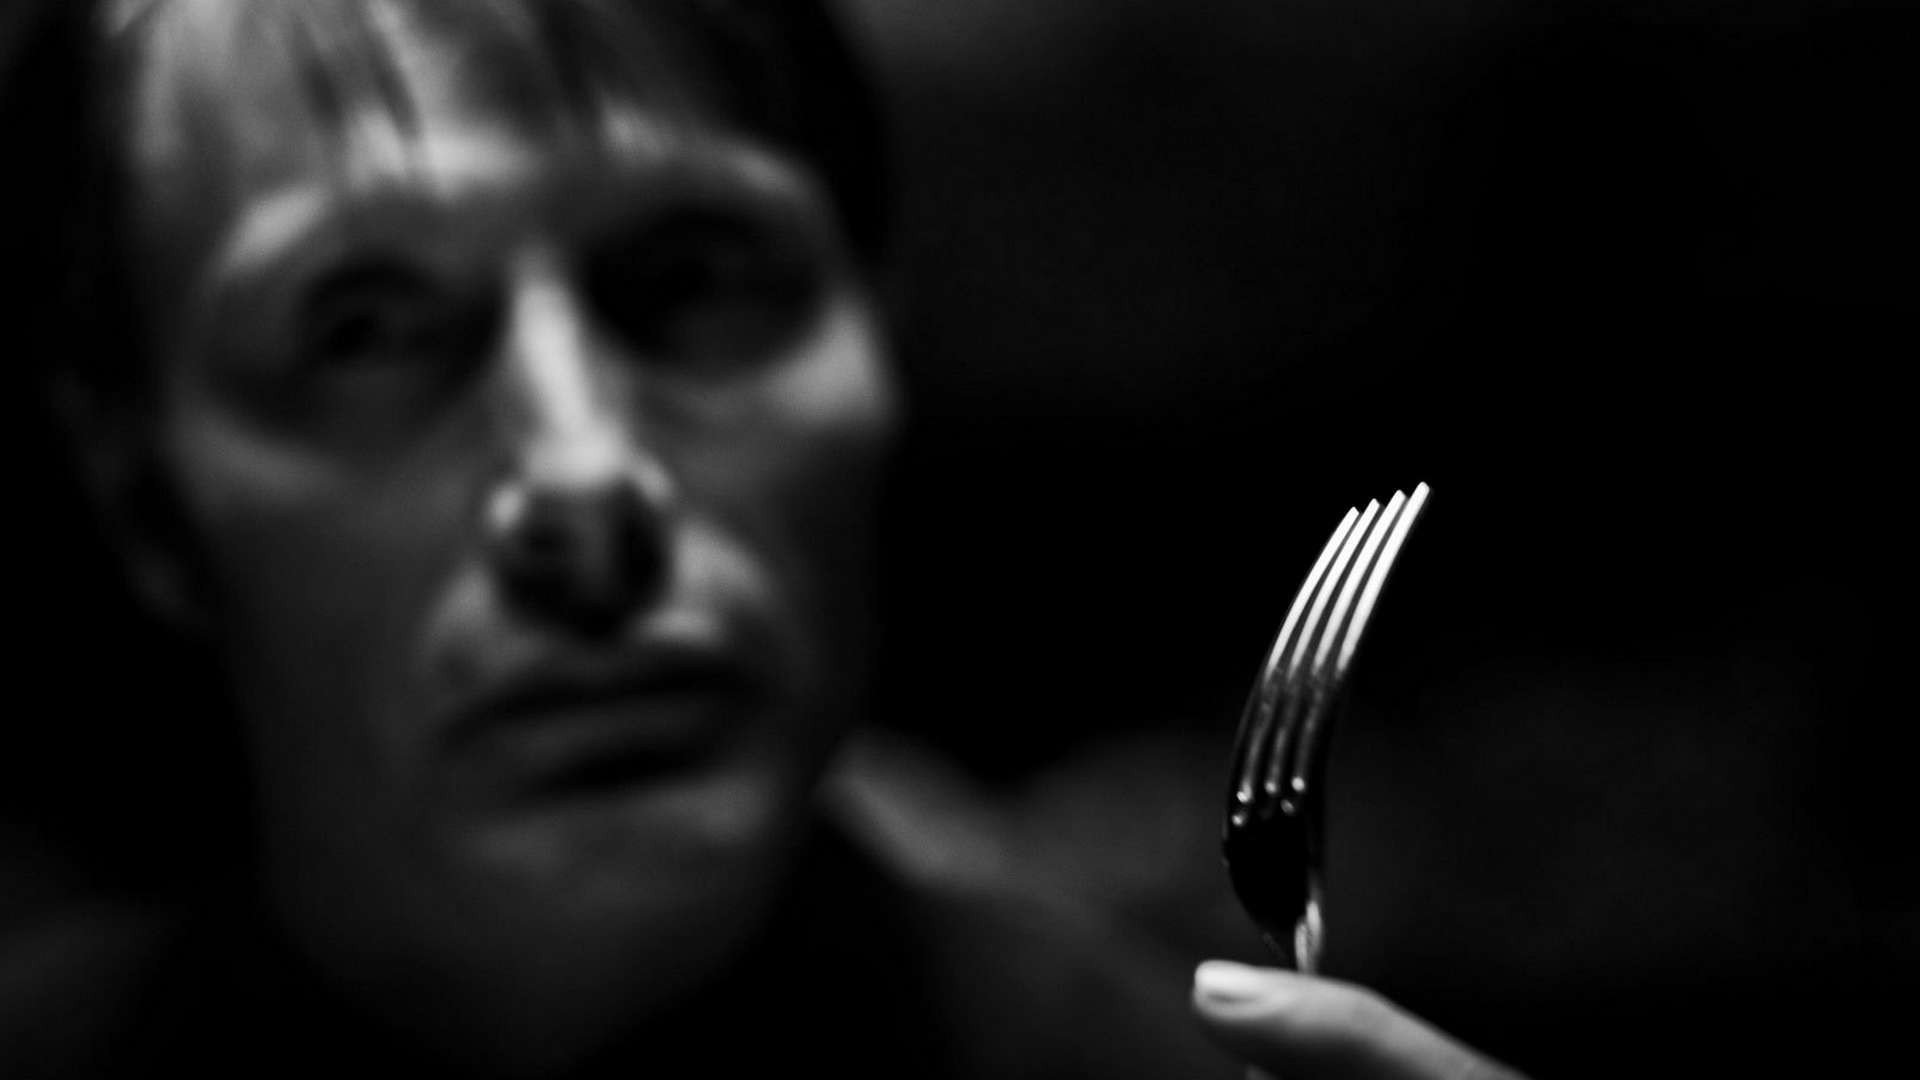 Free Download Hannibal Wallpaper ID8790 Full Hd For Computer